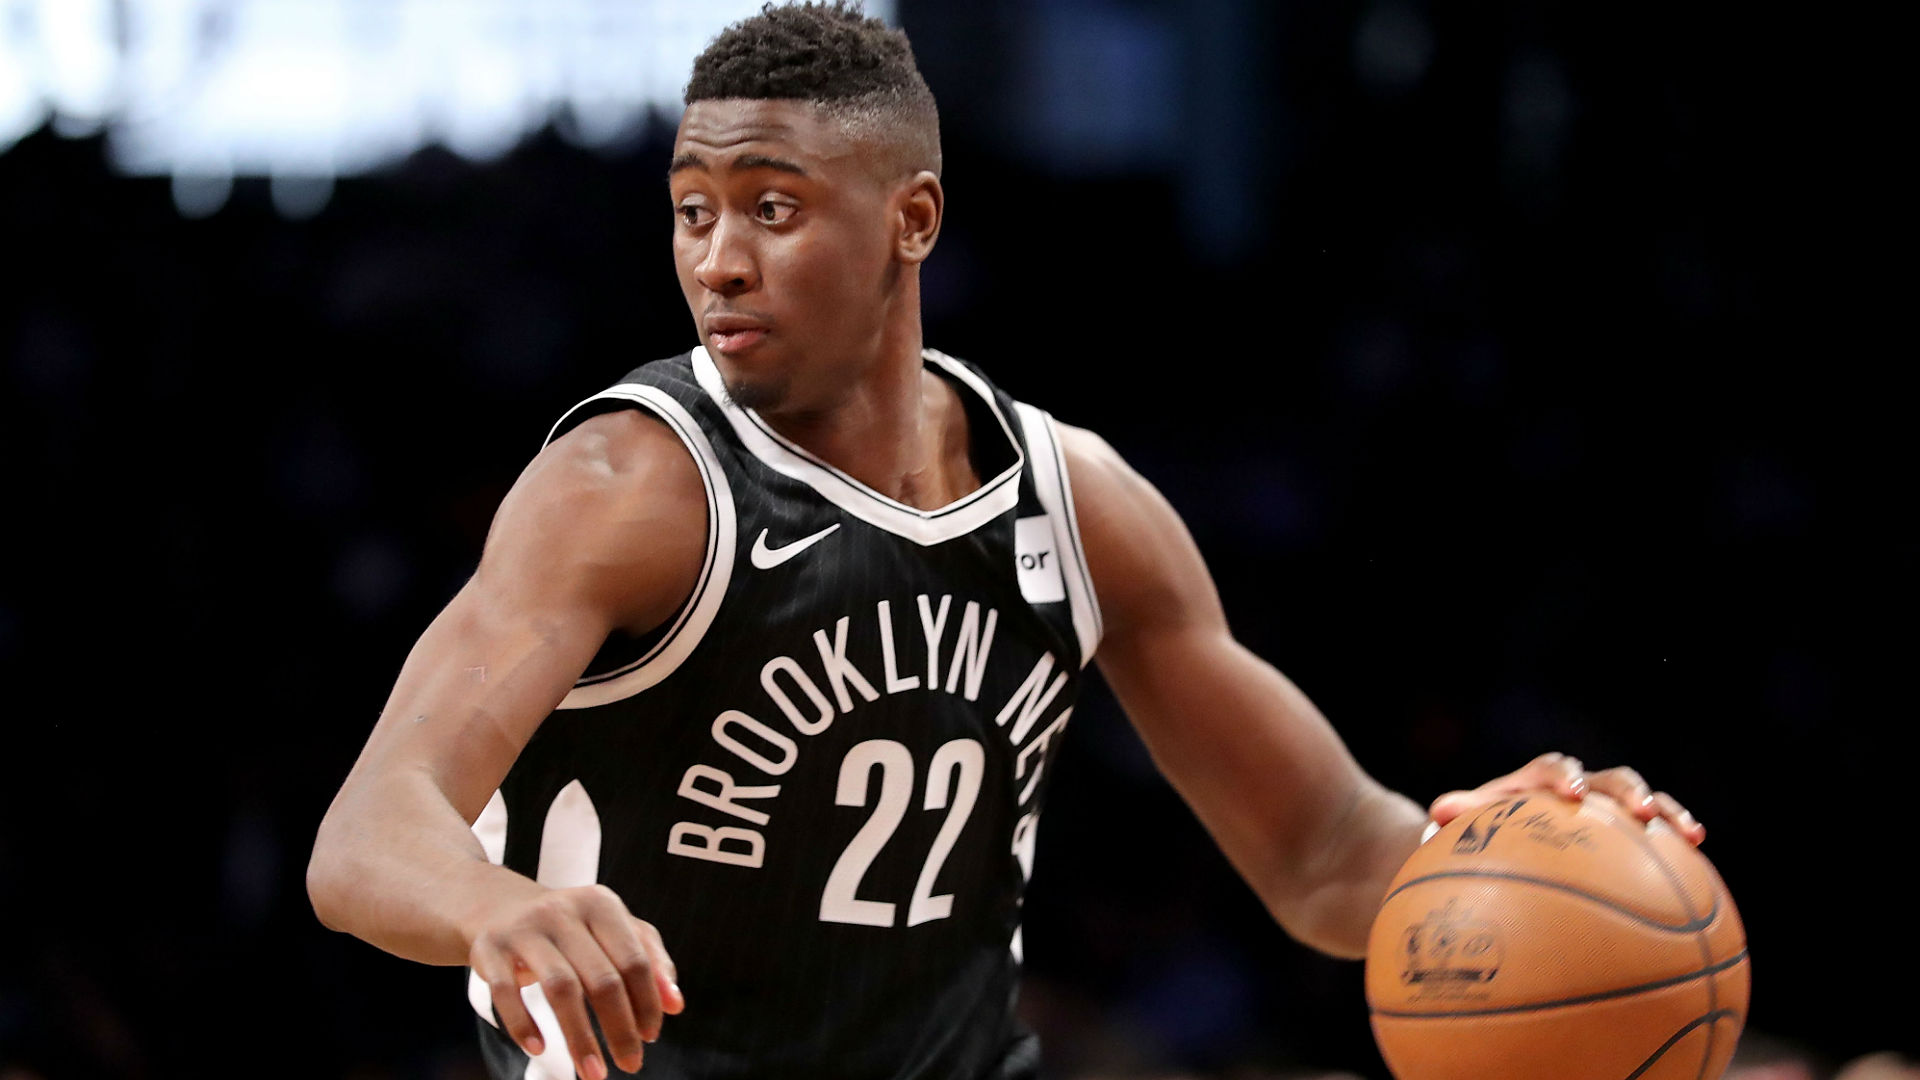 Caris LeVert expected back this season after stunning injury update